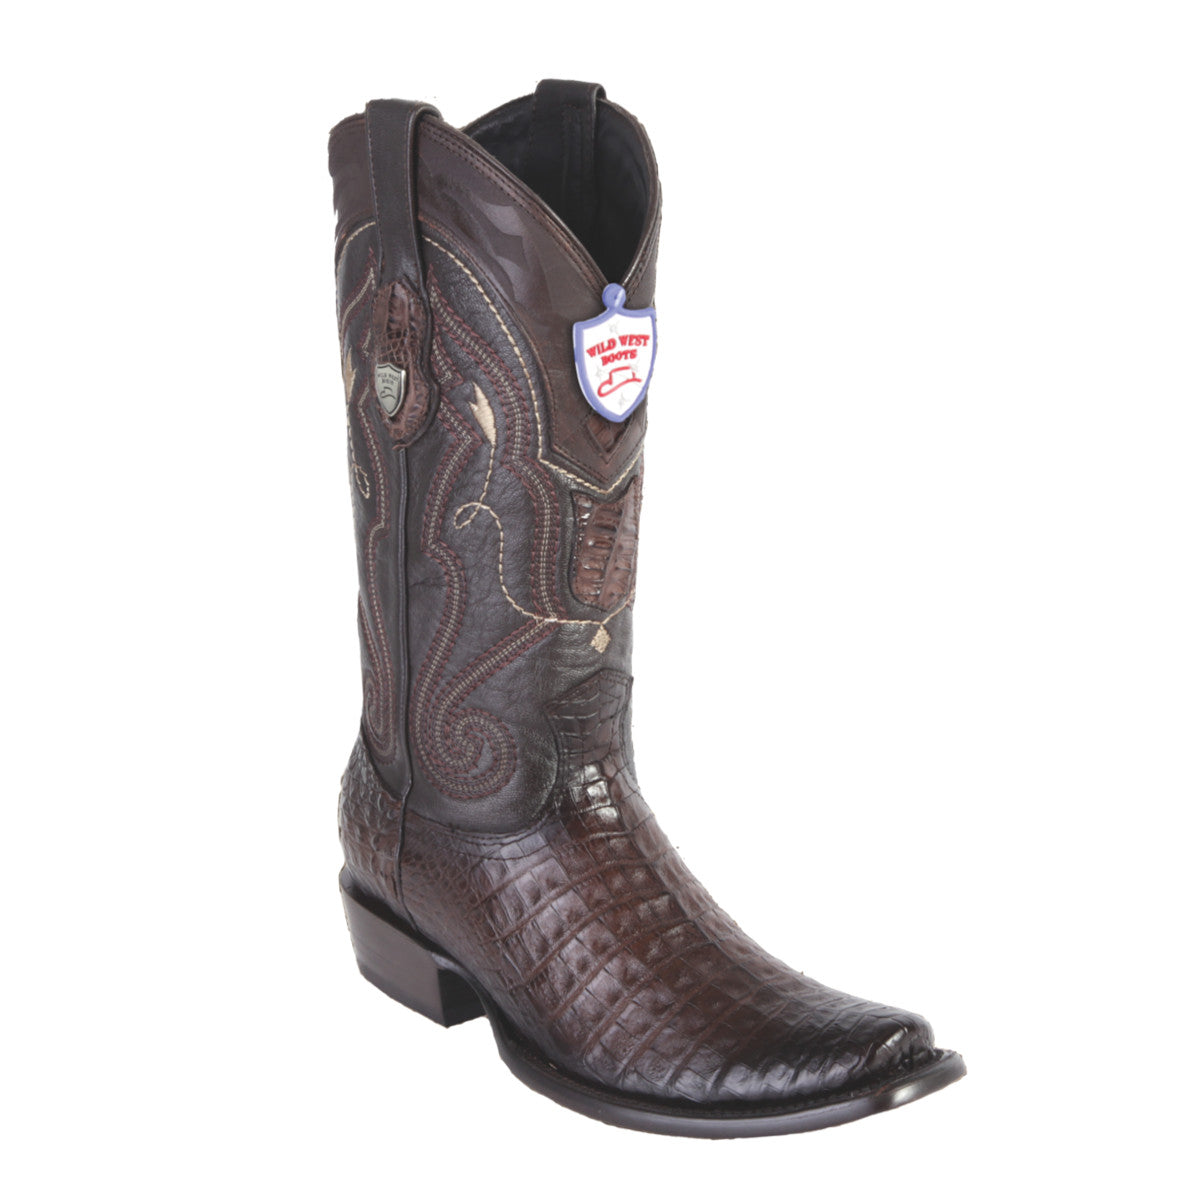 Wild West Boots H79 Dubai Boot Caiman Belly - Faded Brown